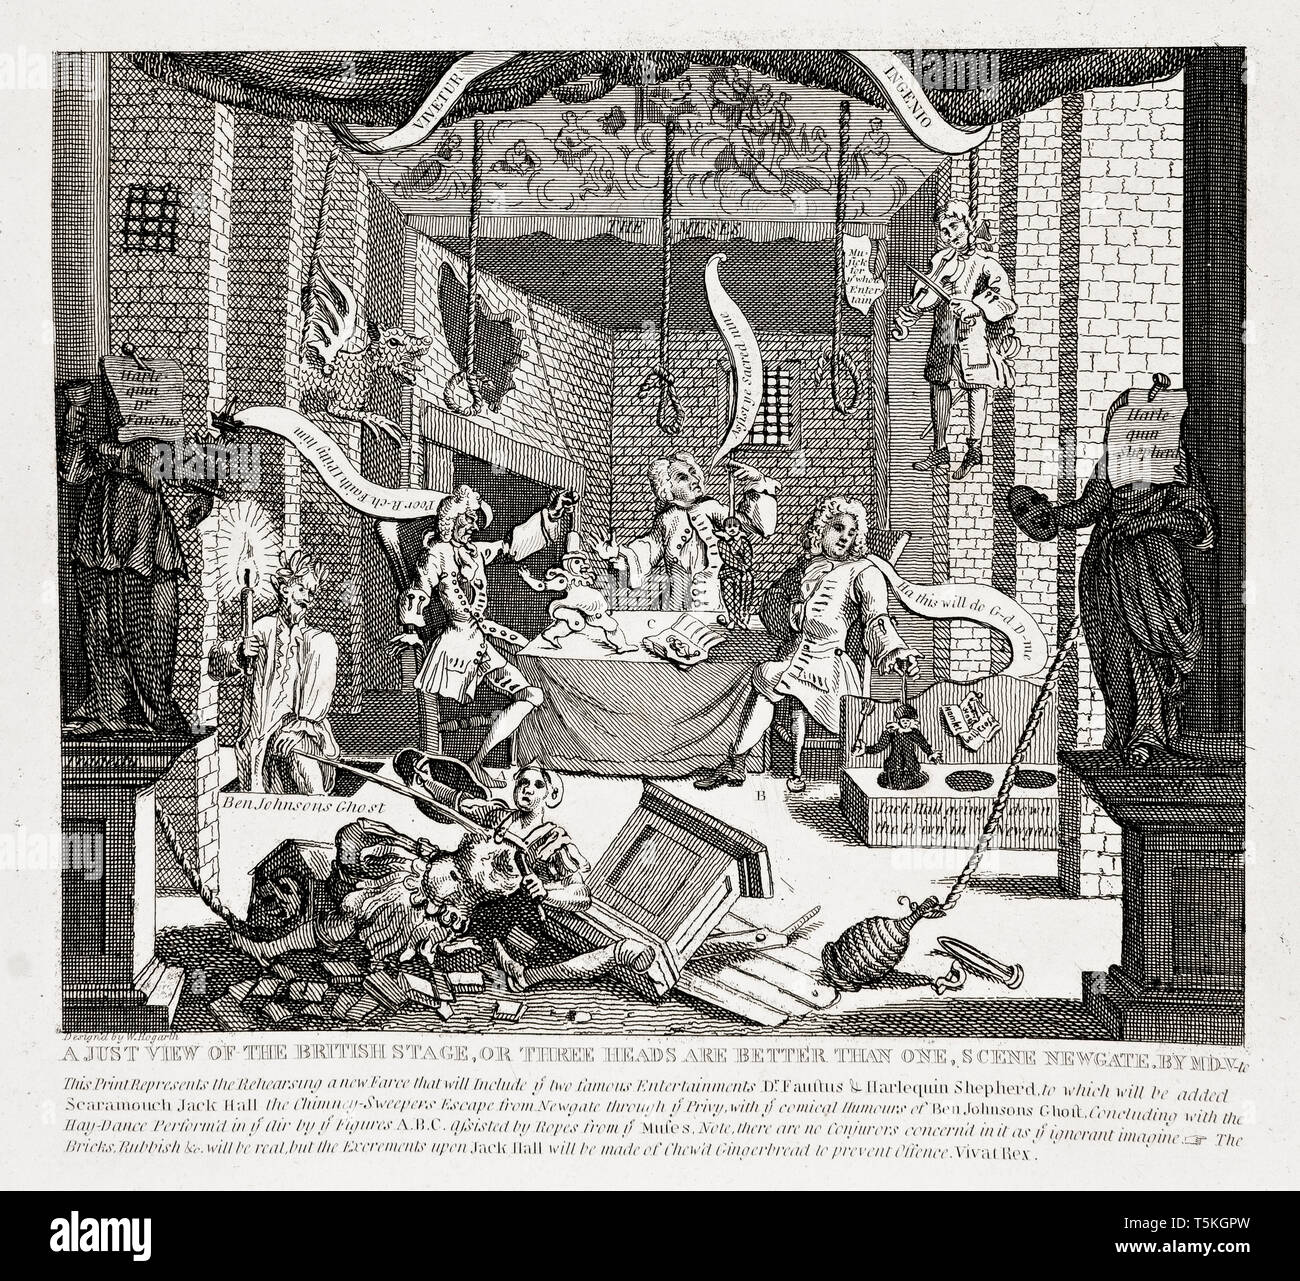 A Just View of the British Stage by William Hogarth, engraving, 1724 Stock Photo